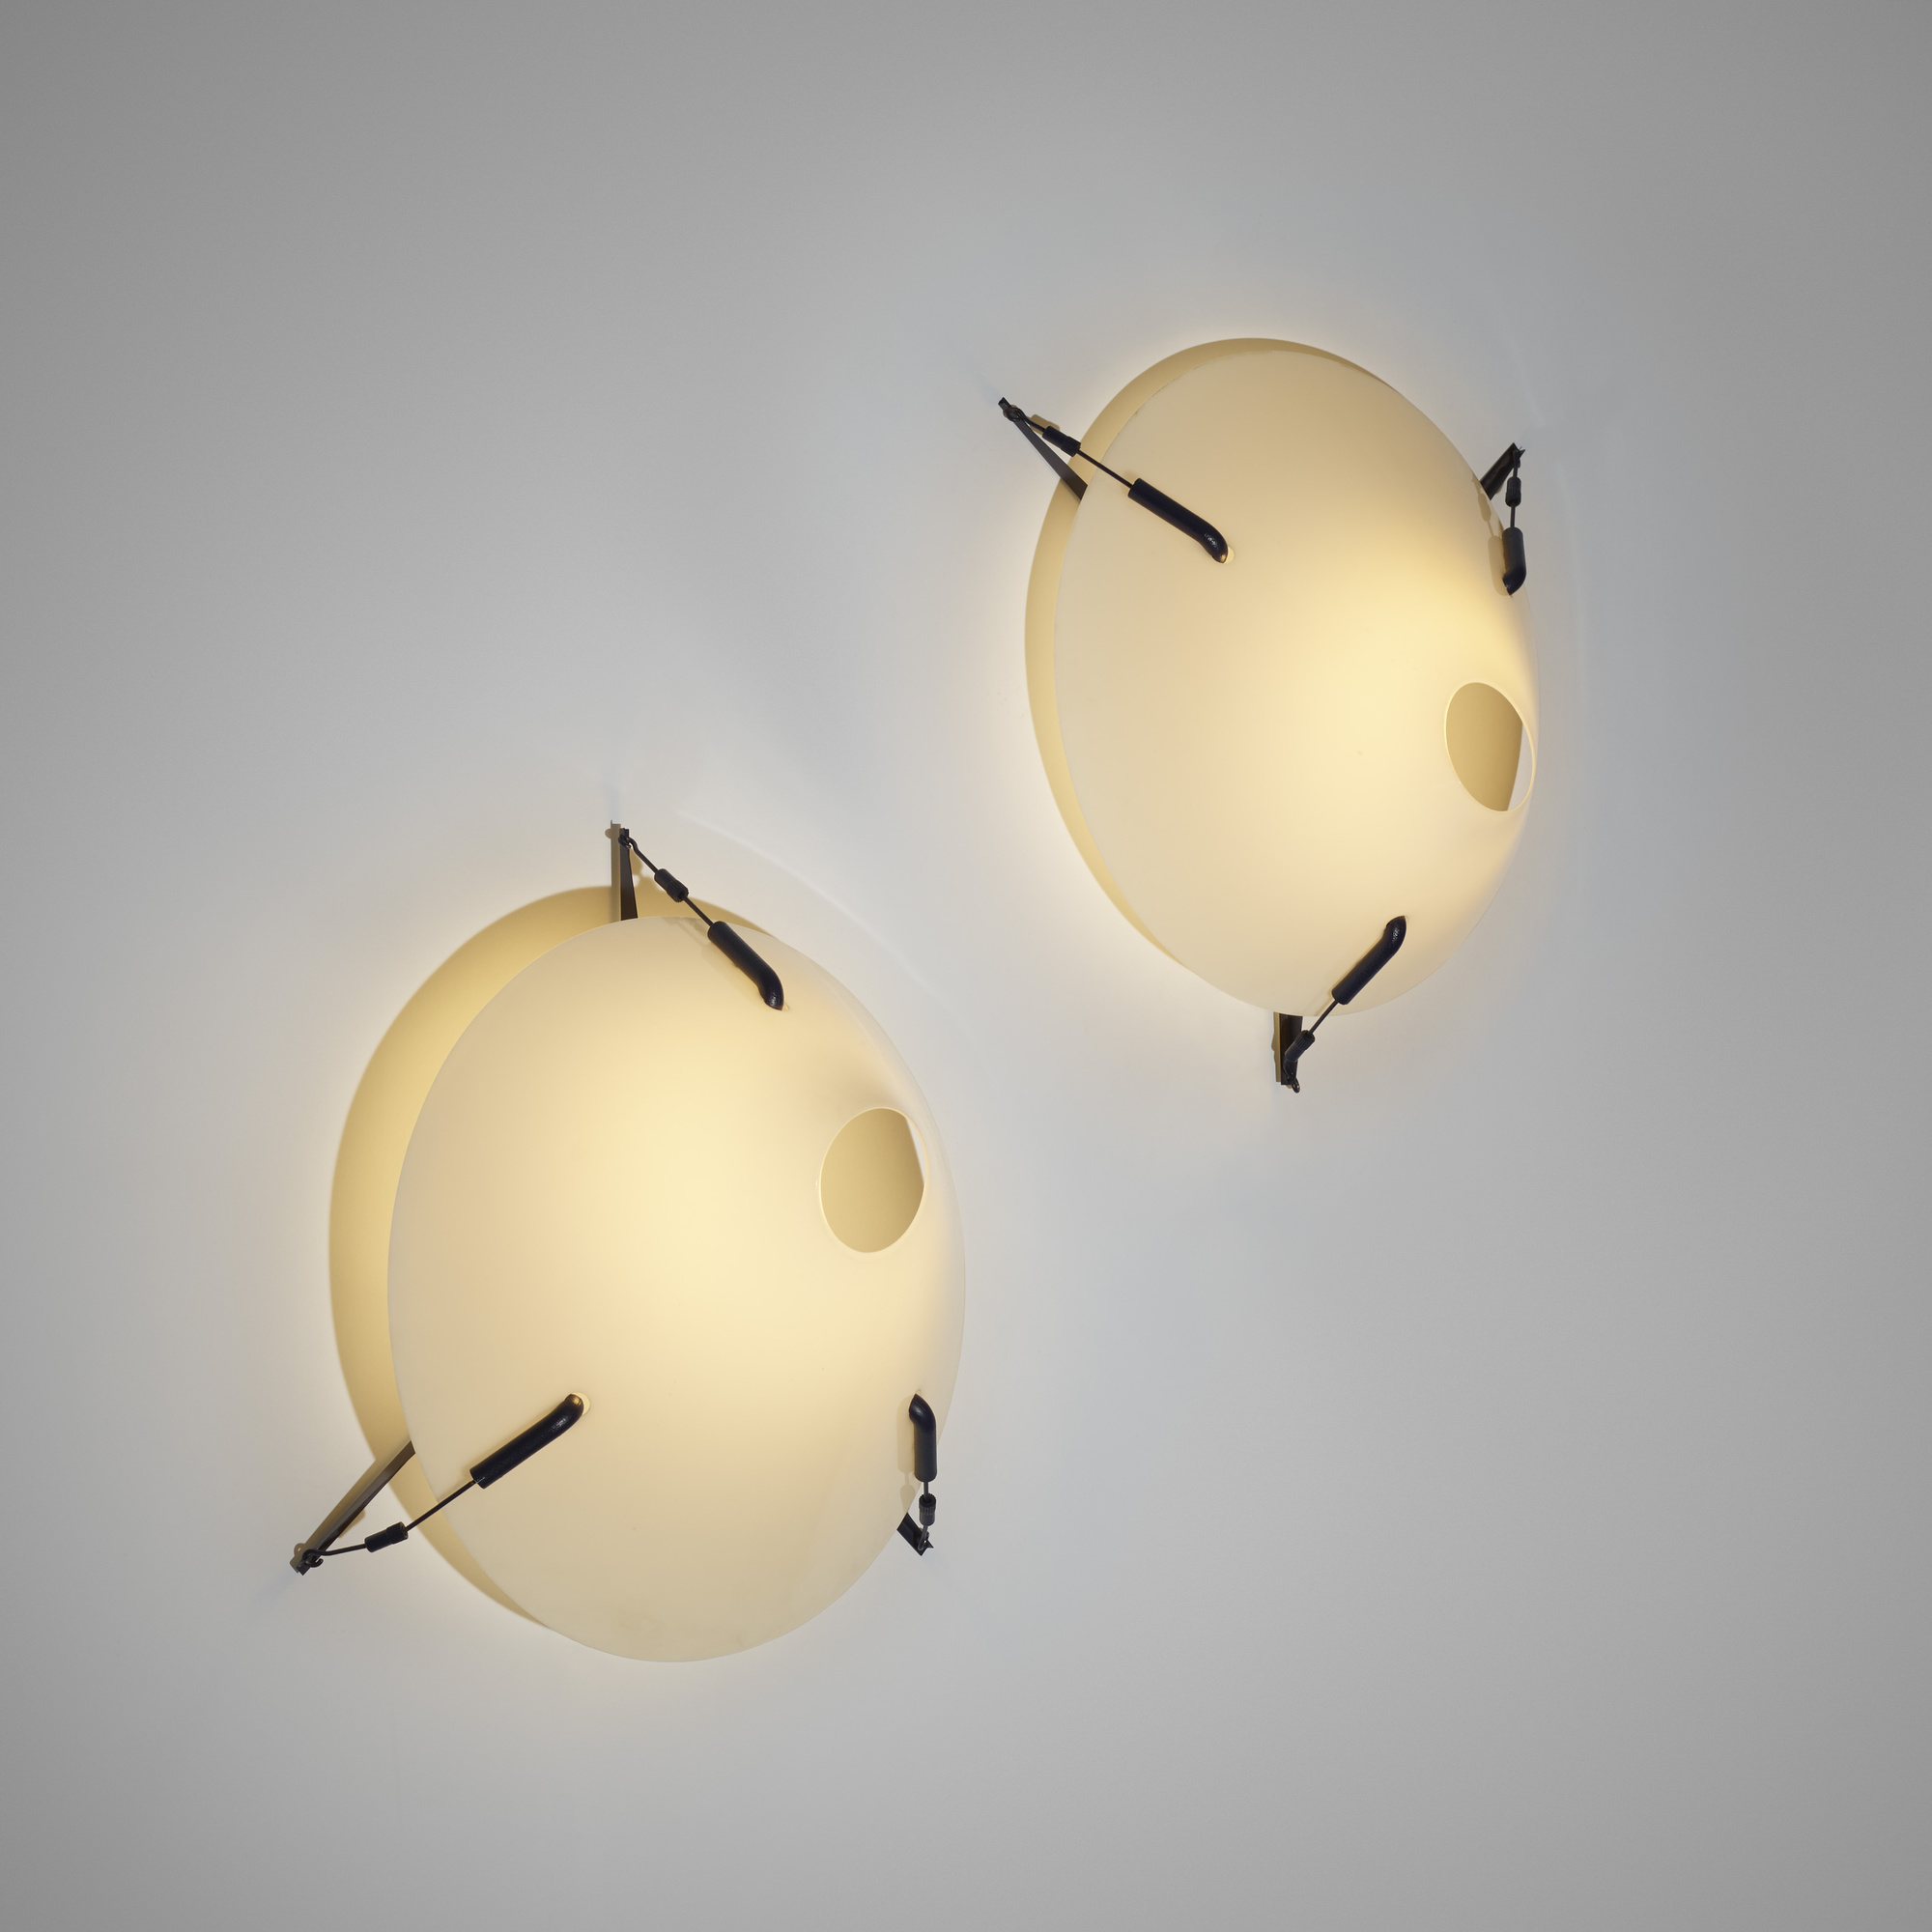 271: Elio Martinelli / sconces, pair (1 of 2)